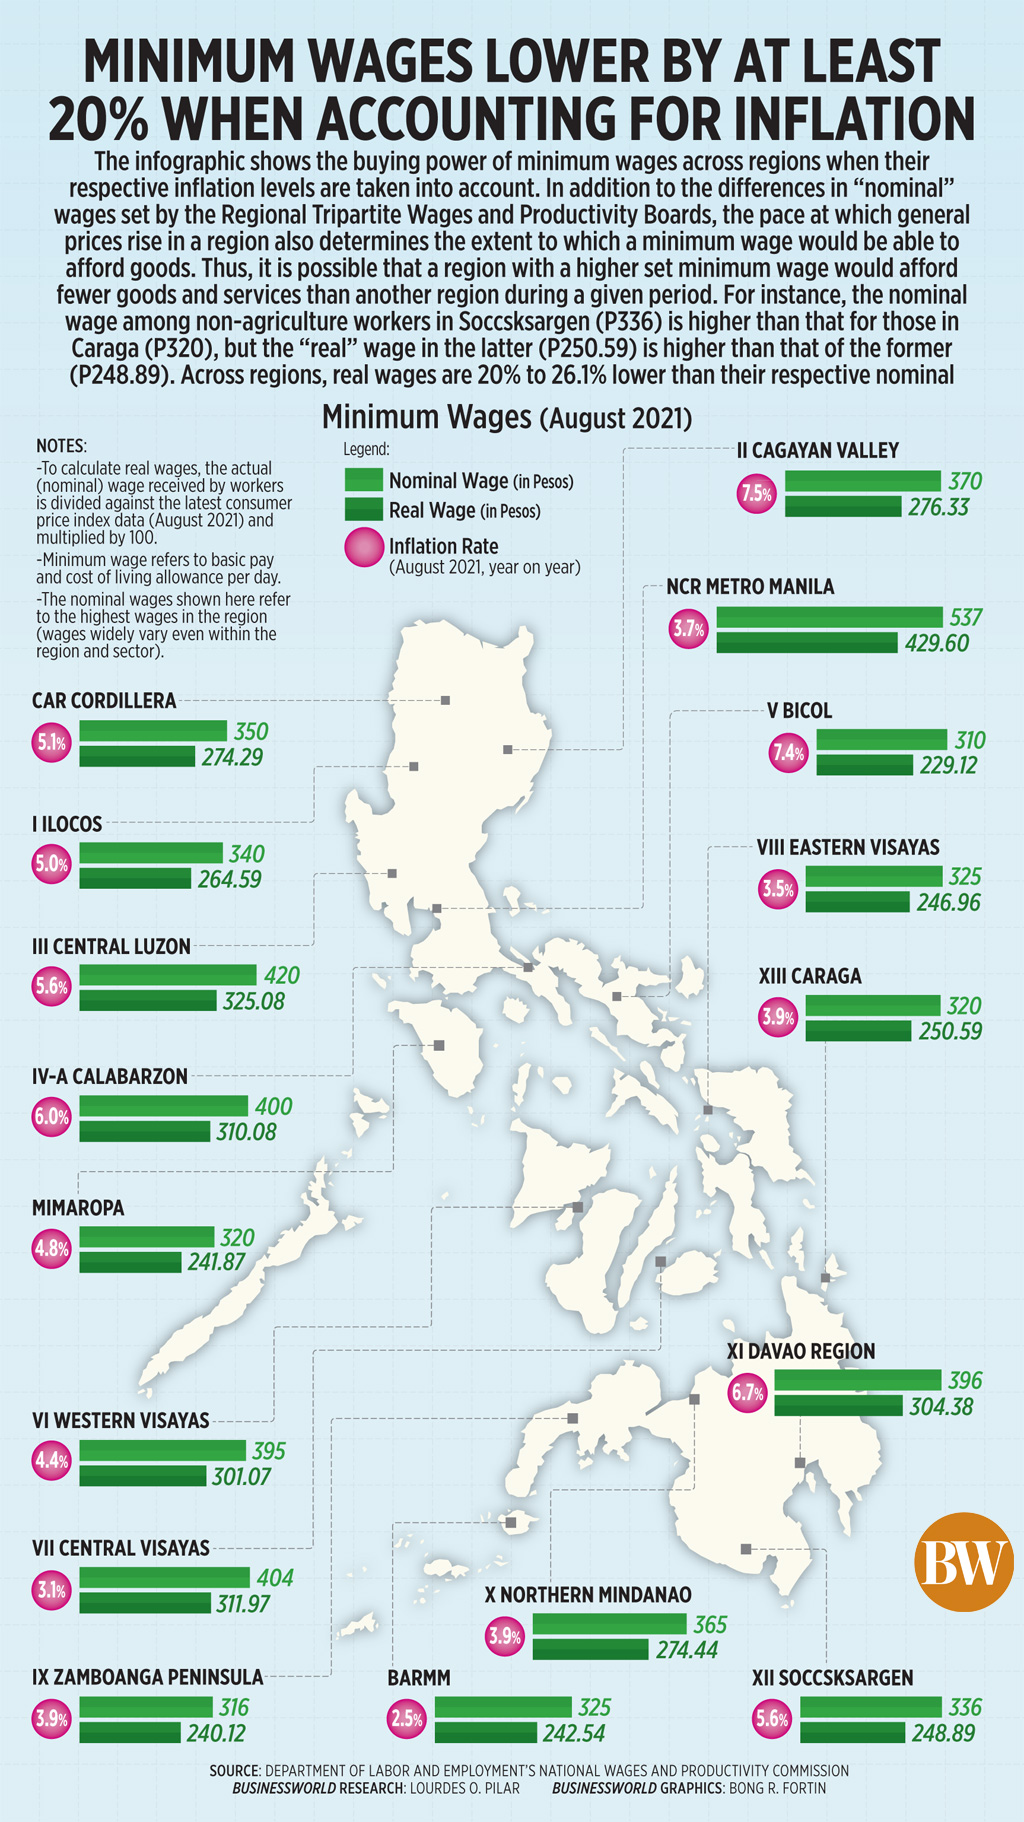 Minimum wages lower by at least 20% when accounting for inflation